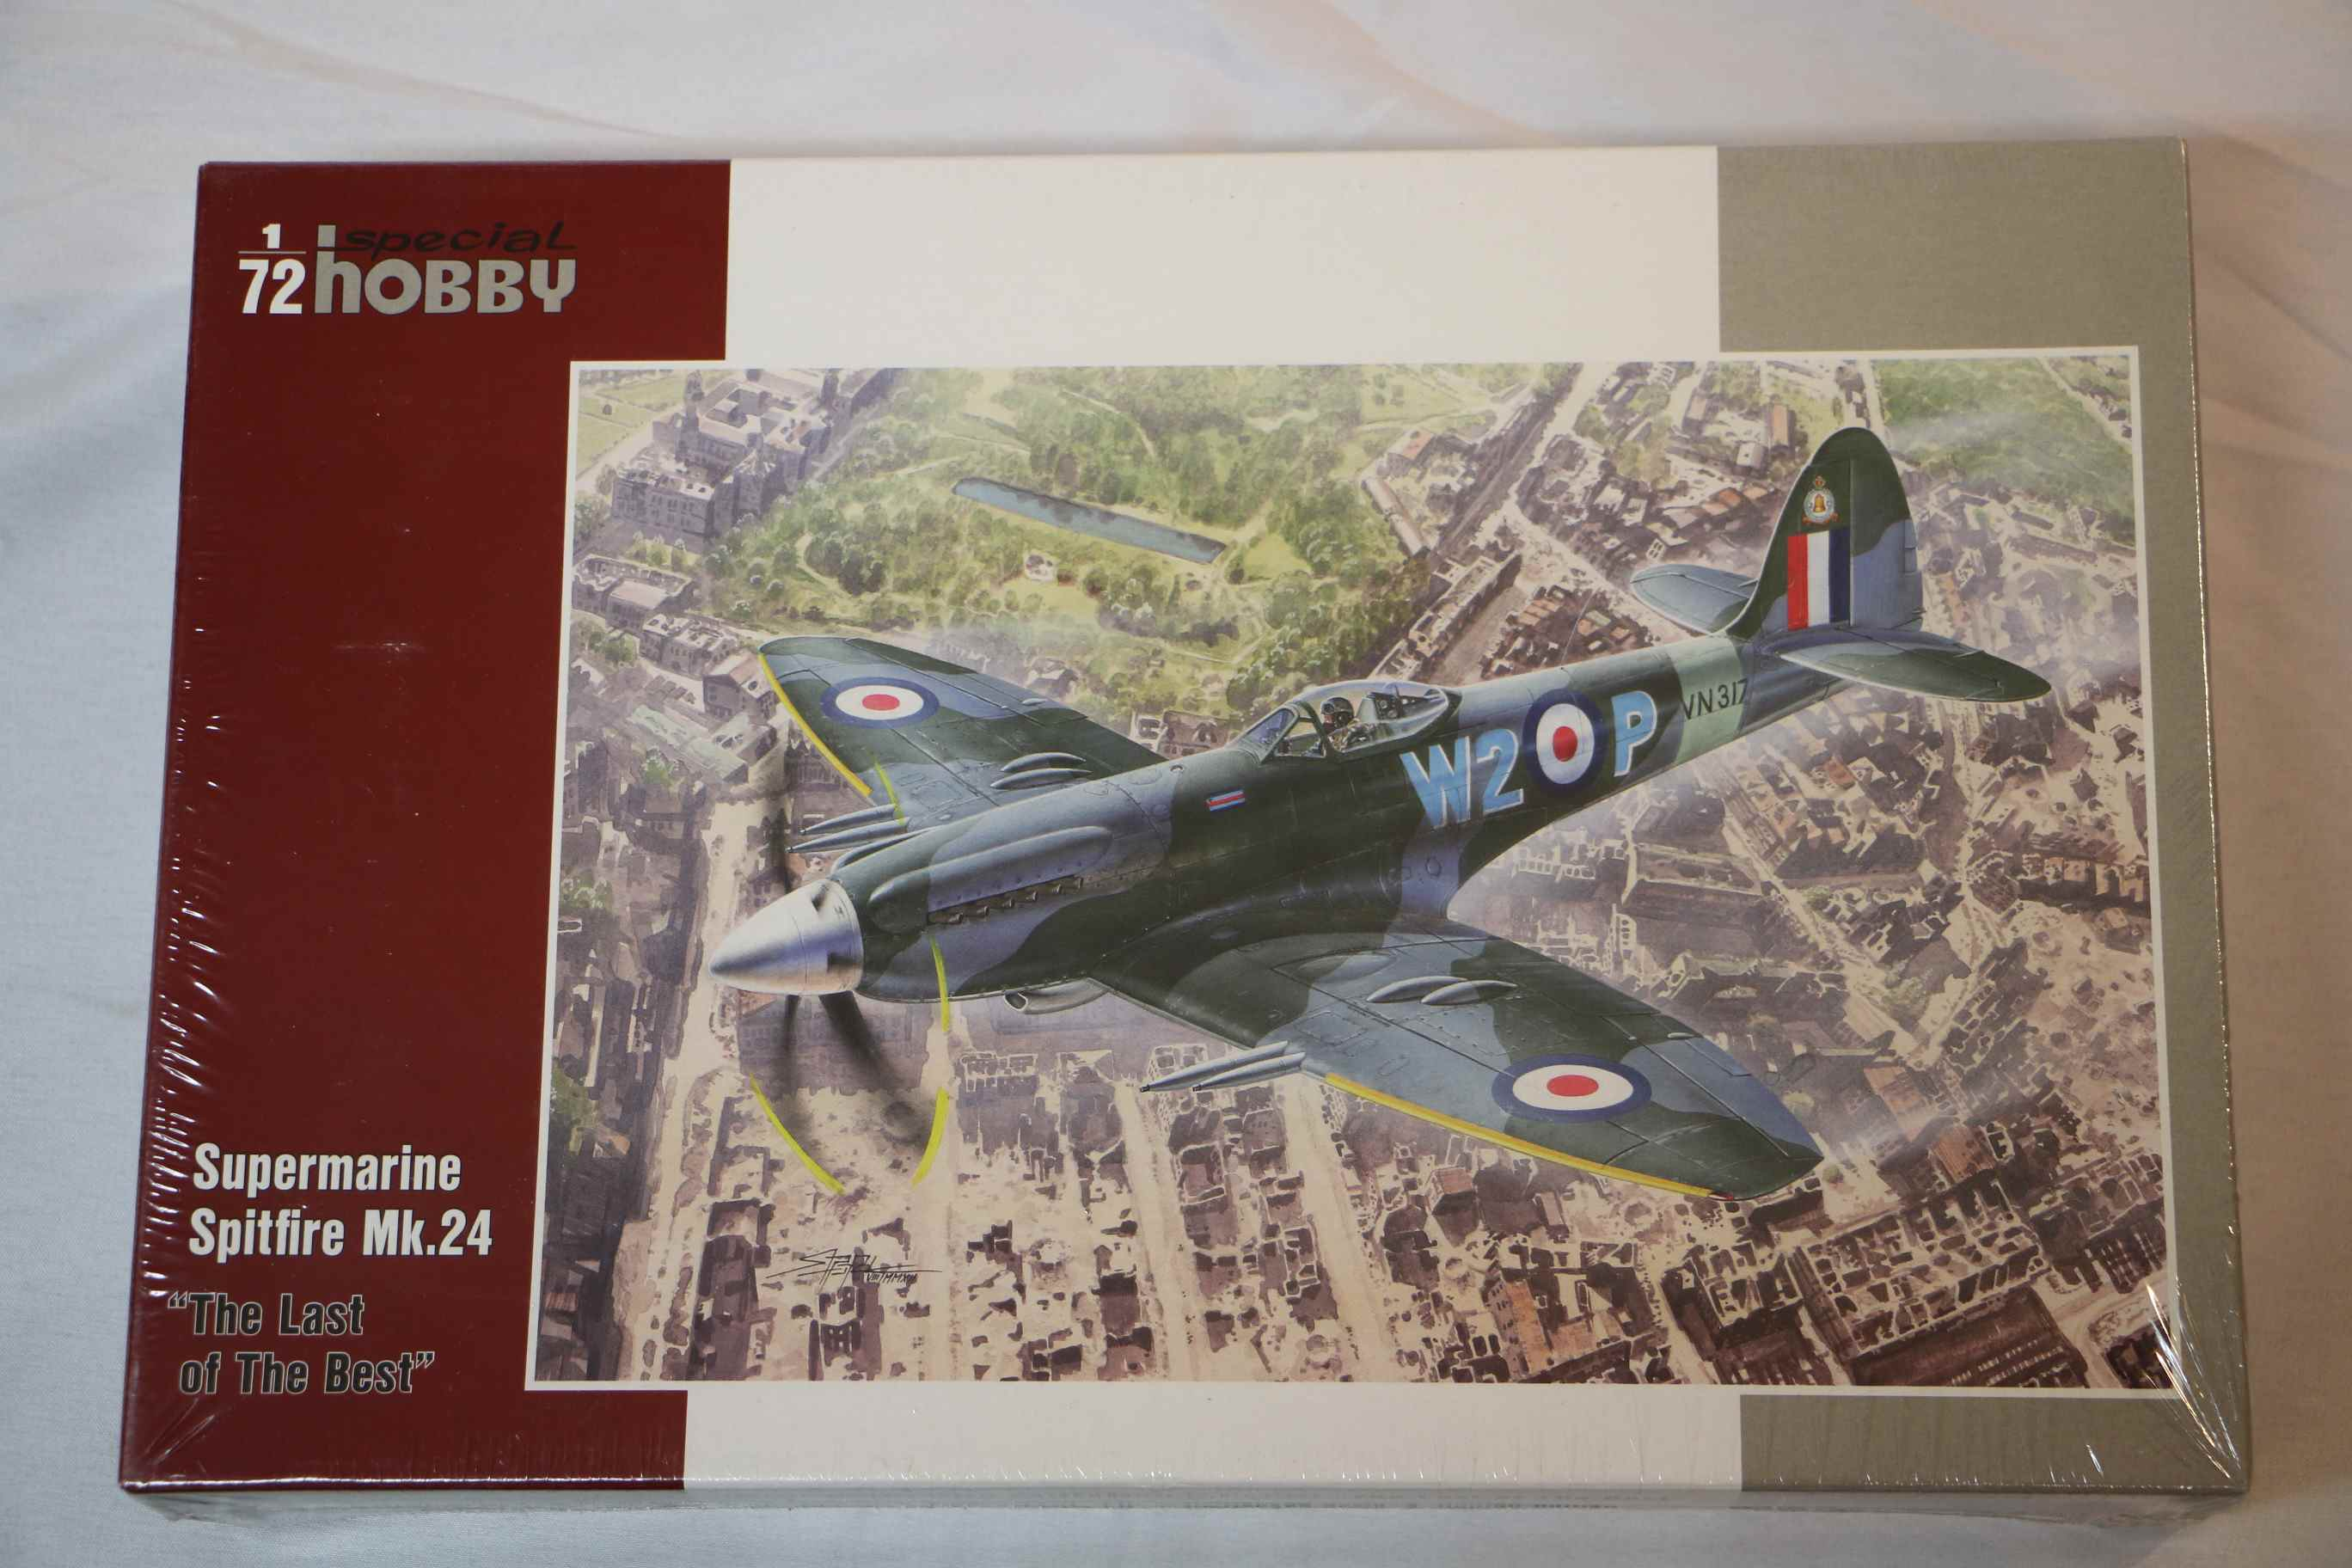 SPE72233 - Special Hobby 1/72 Spitfire Mk.24 'Last of the Best'